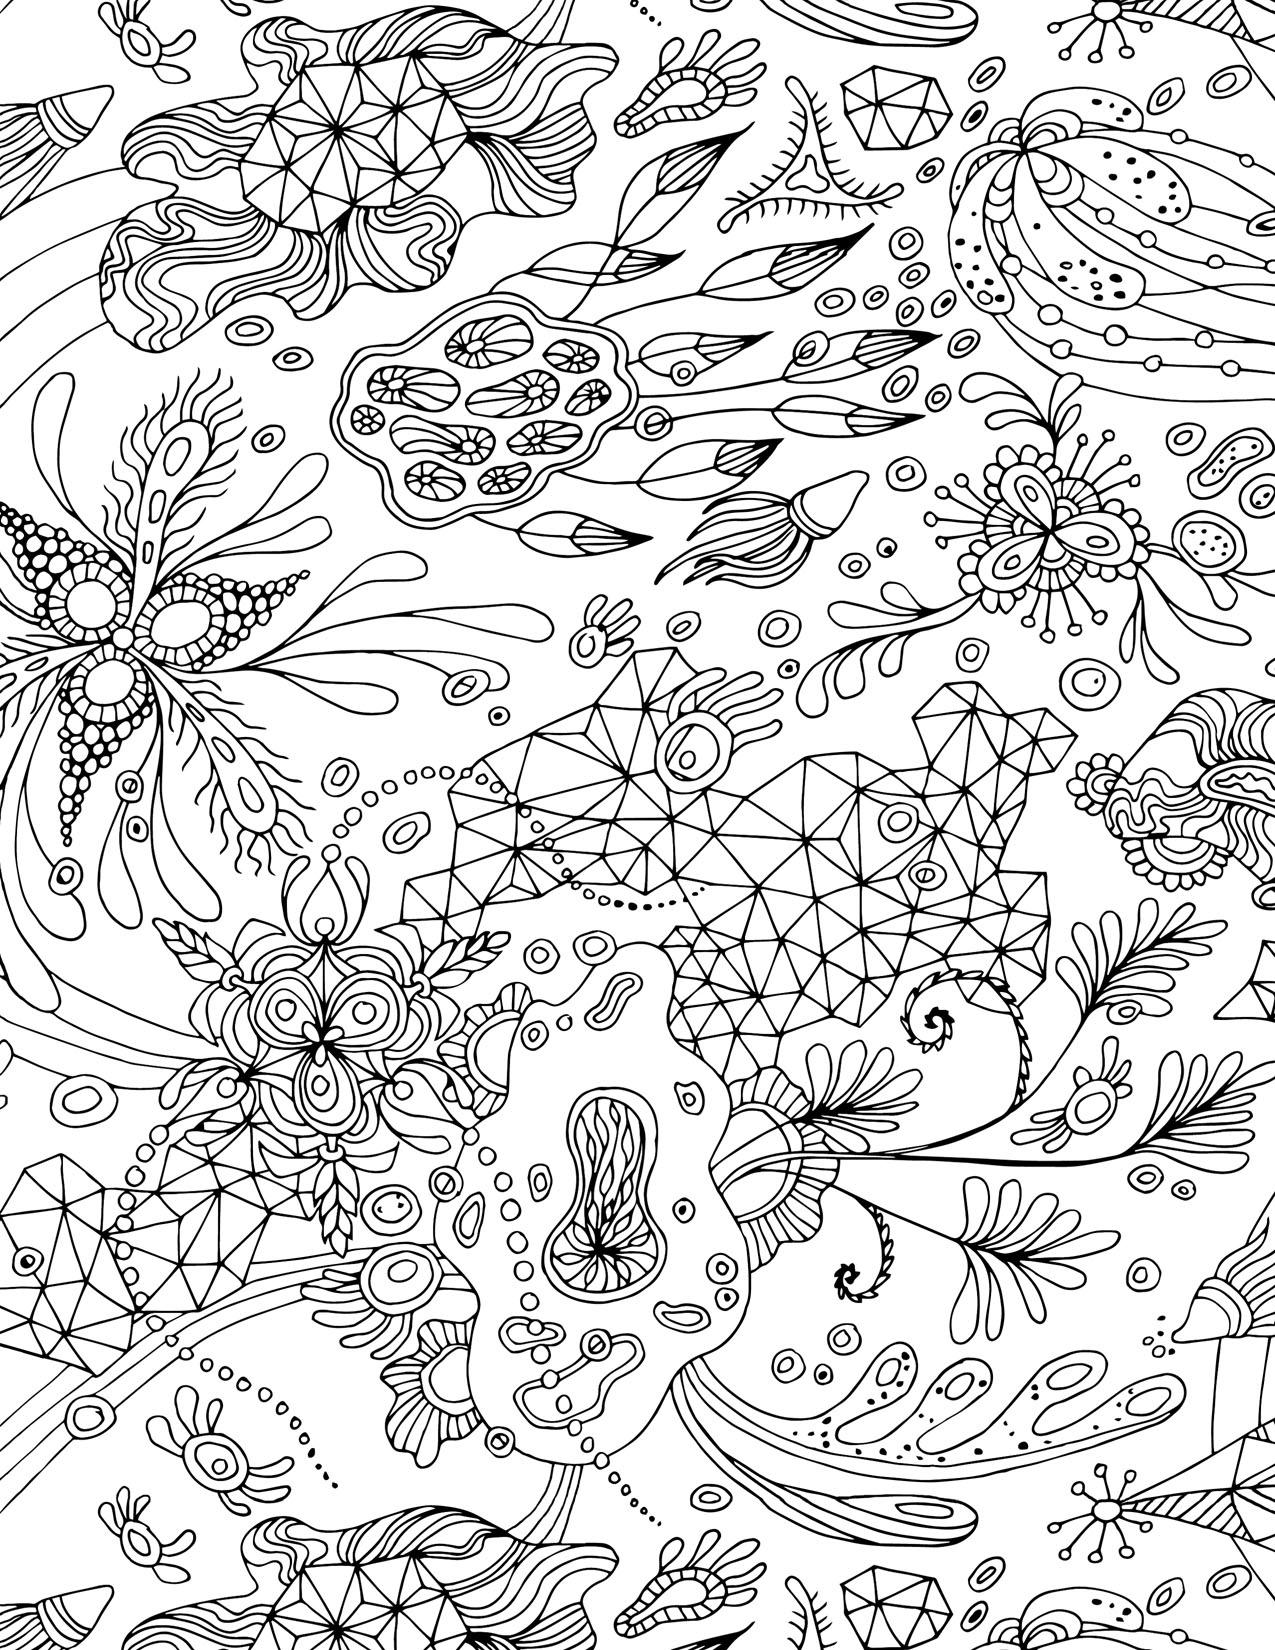 The microbiology coloring book free download - B965d39d